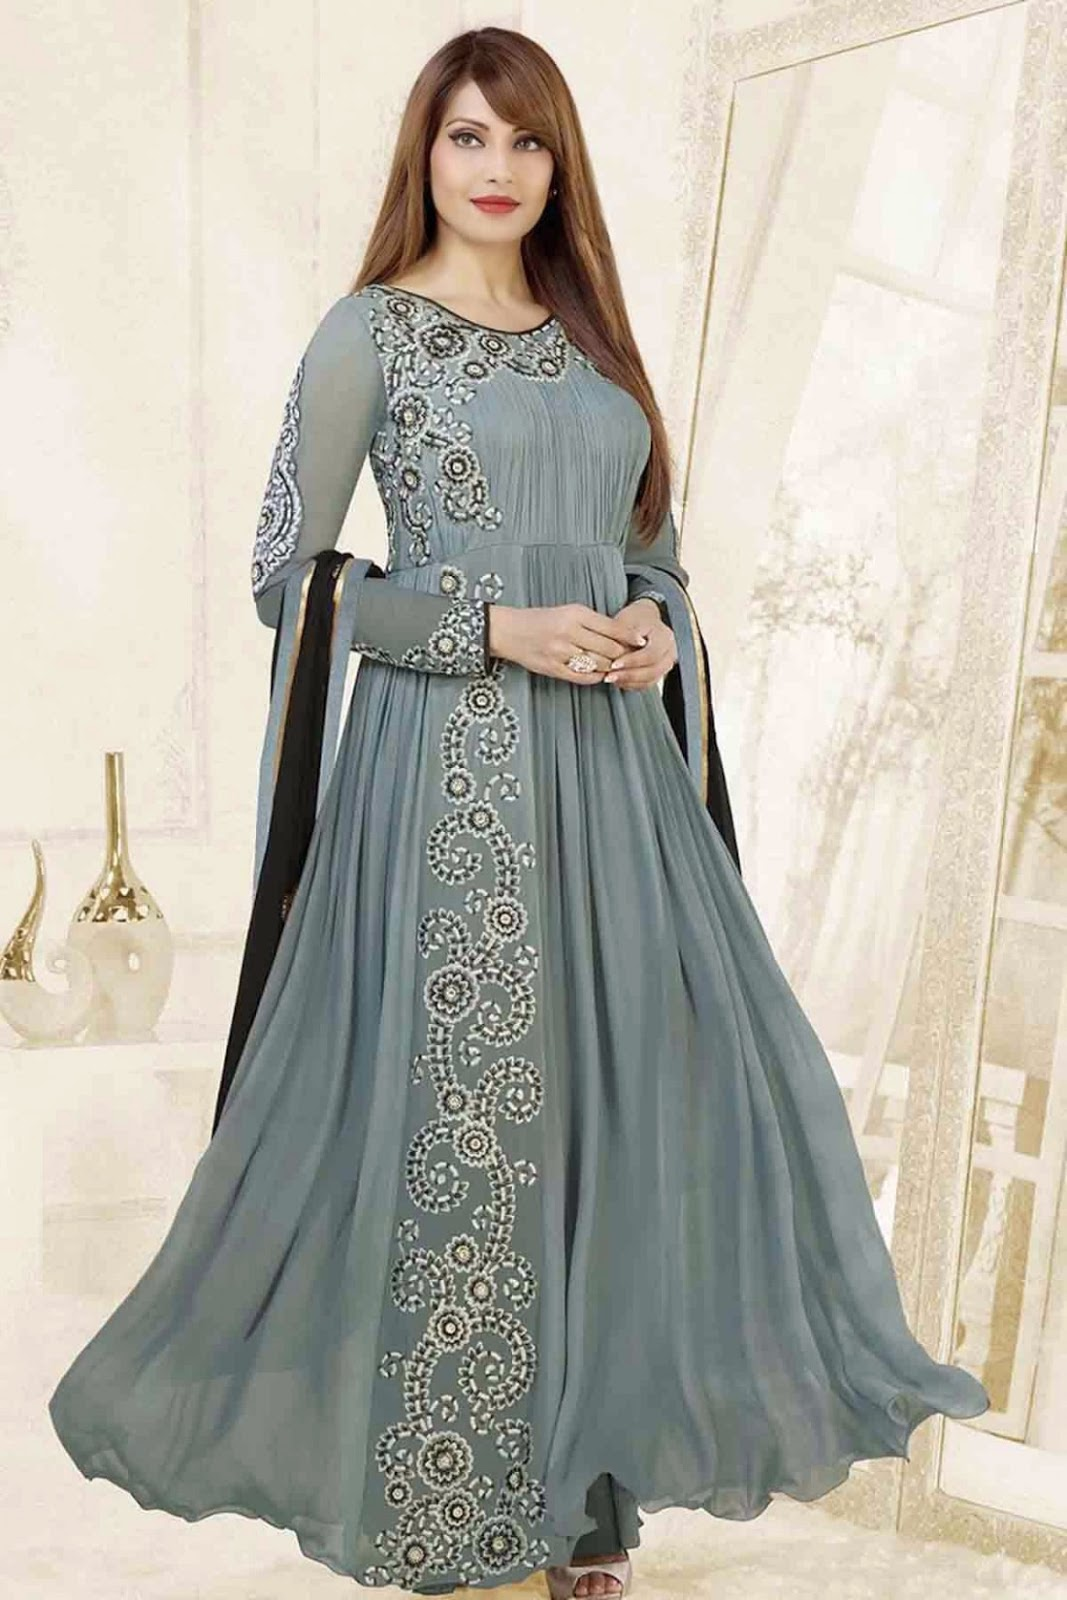 Designer Replica Dresses Wholesale Bollywood Actress Saree Collections Replica Anarkali Suits